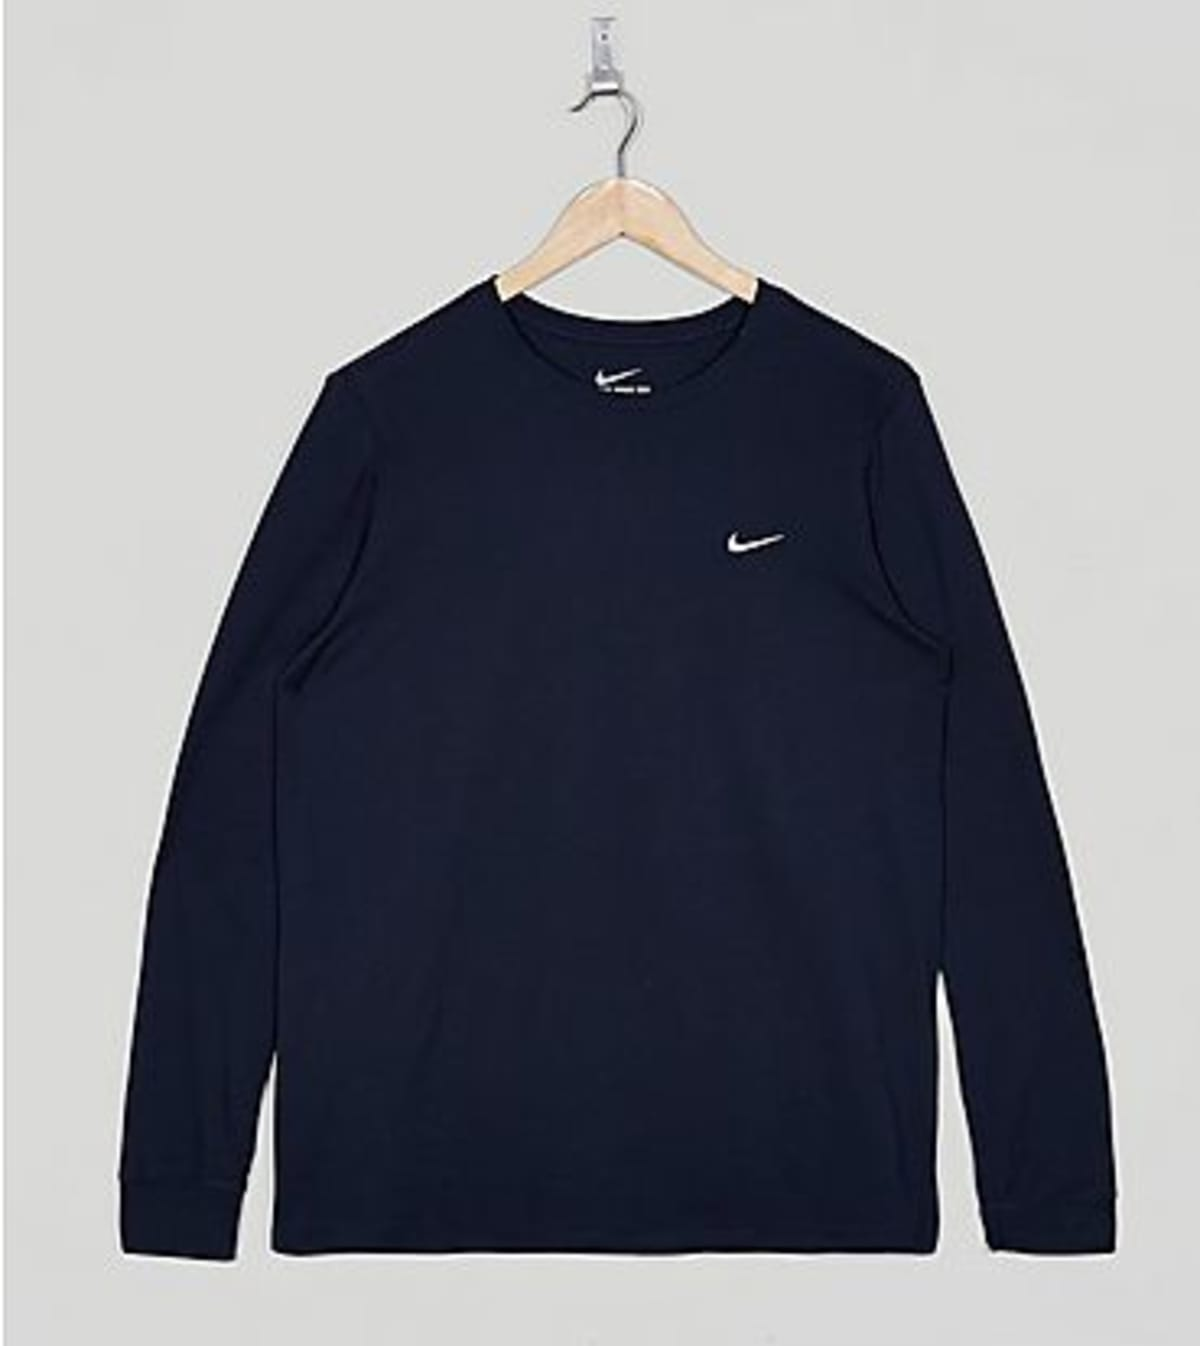 Nike Launches Blue Label